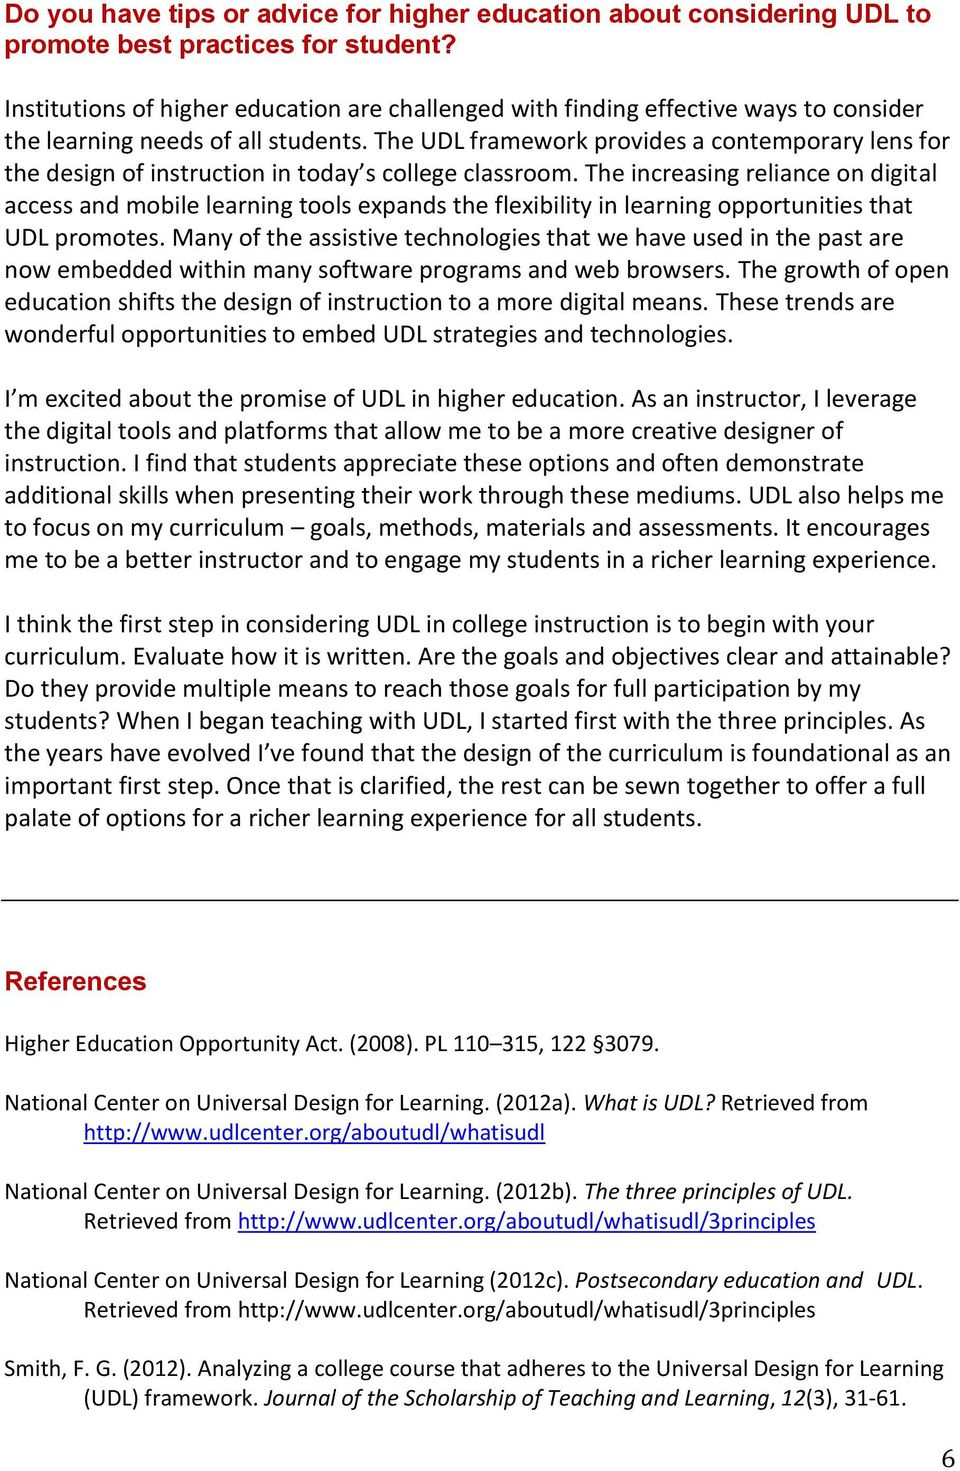 The UDL framework provides a contemporary lens for the design of instruction in today s college classroom.